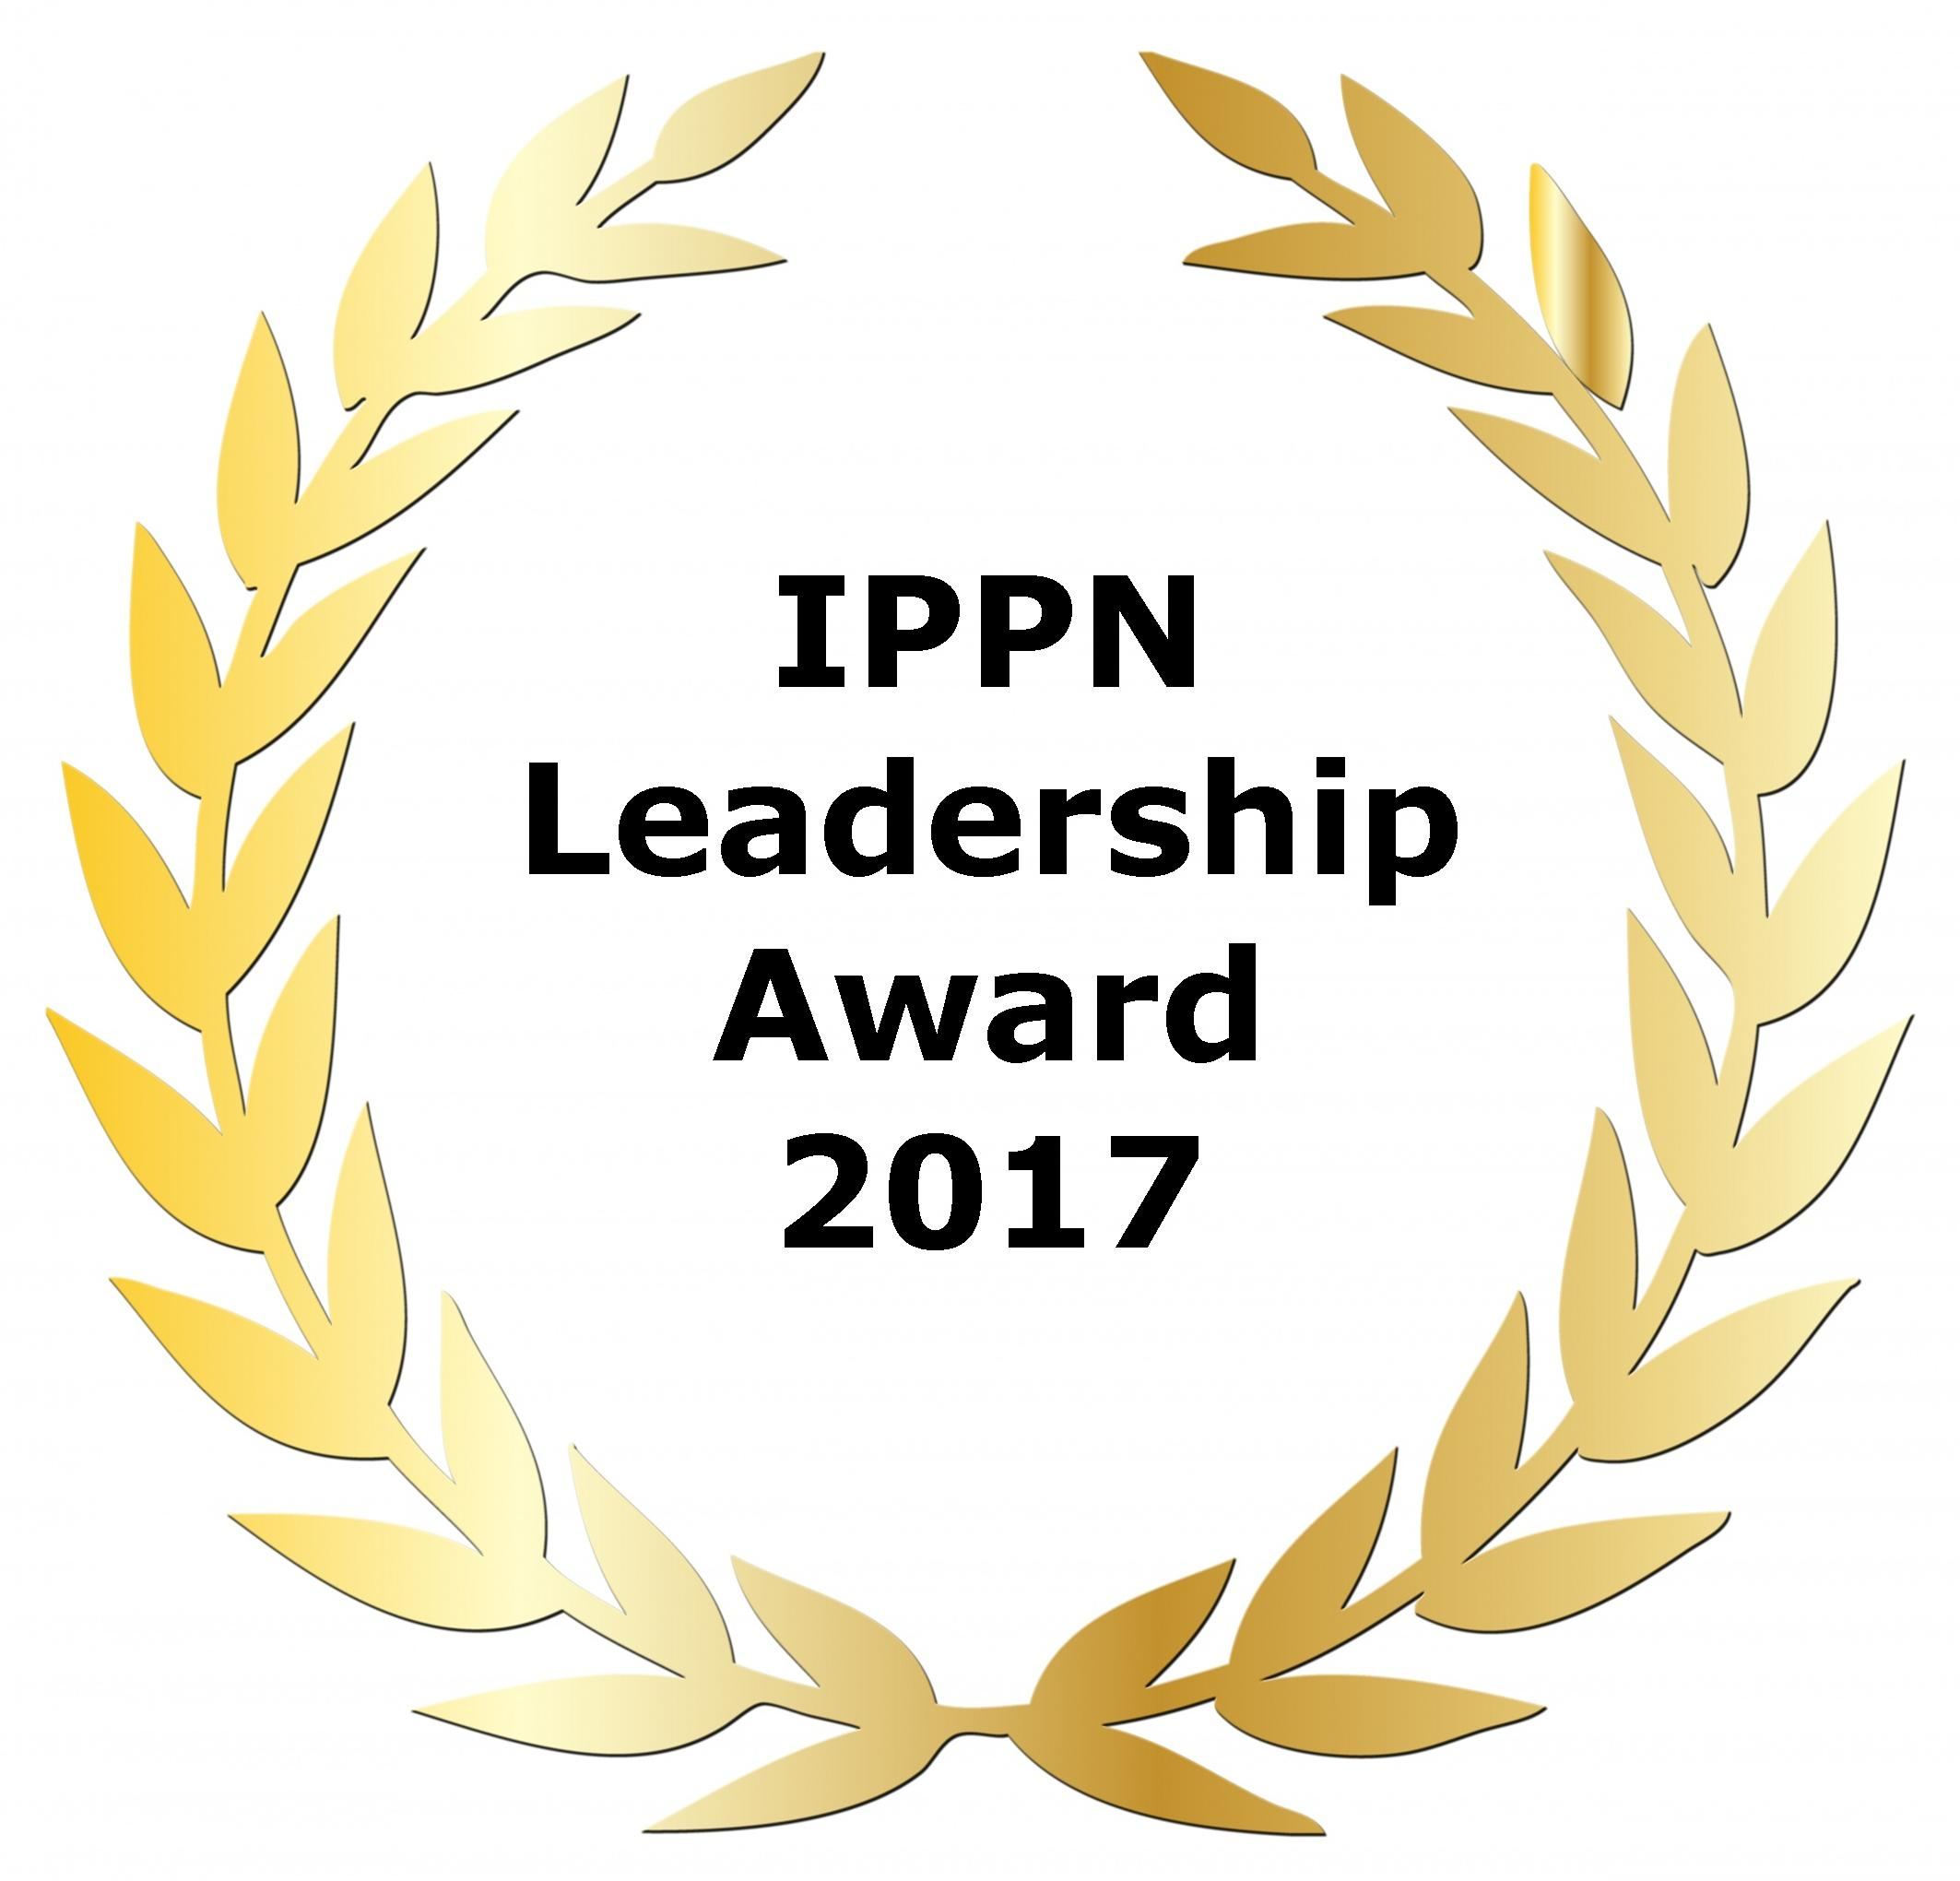 LeadershipAward